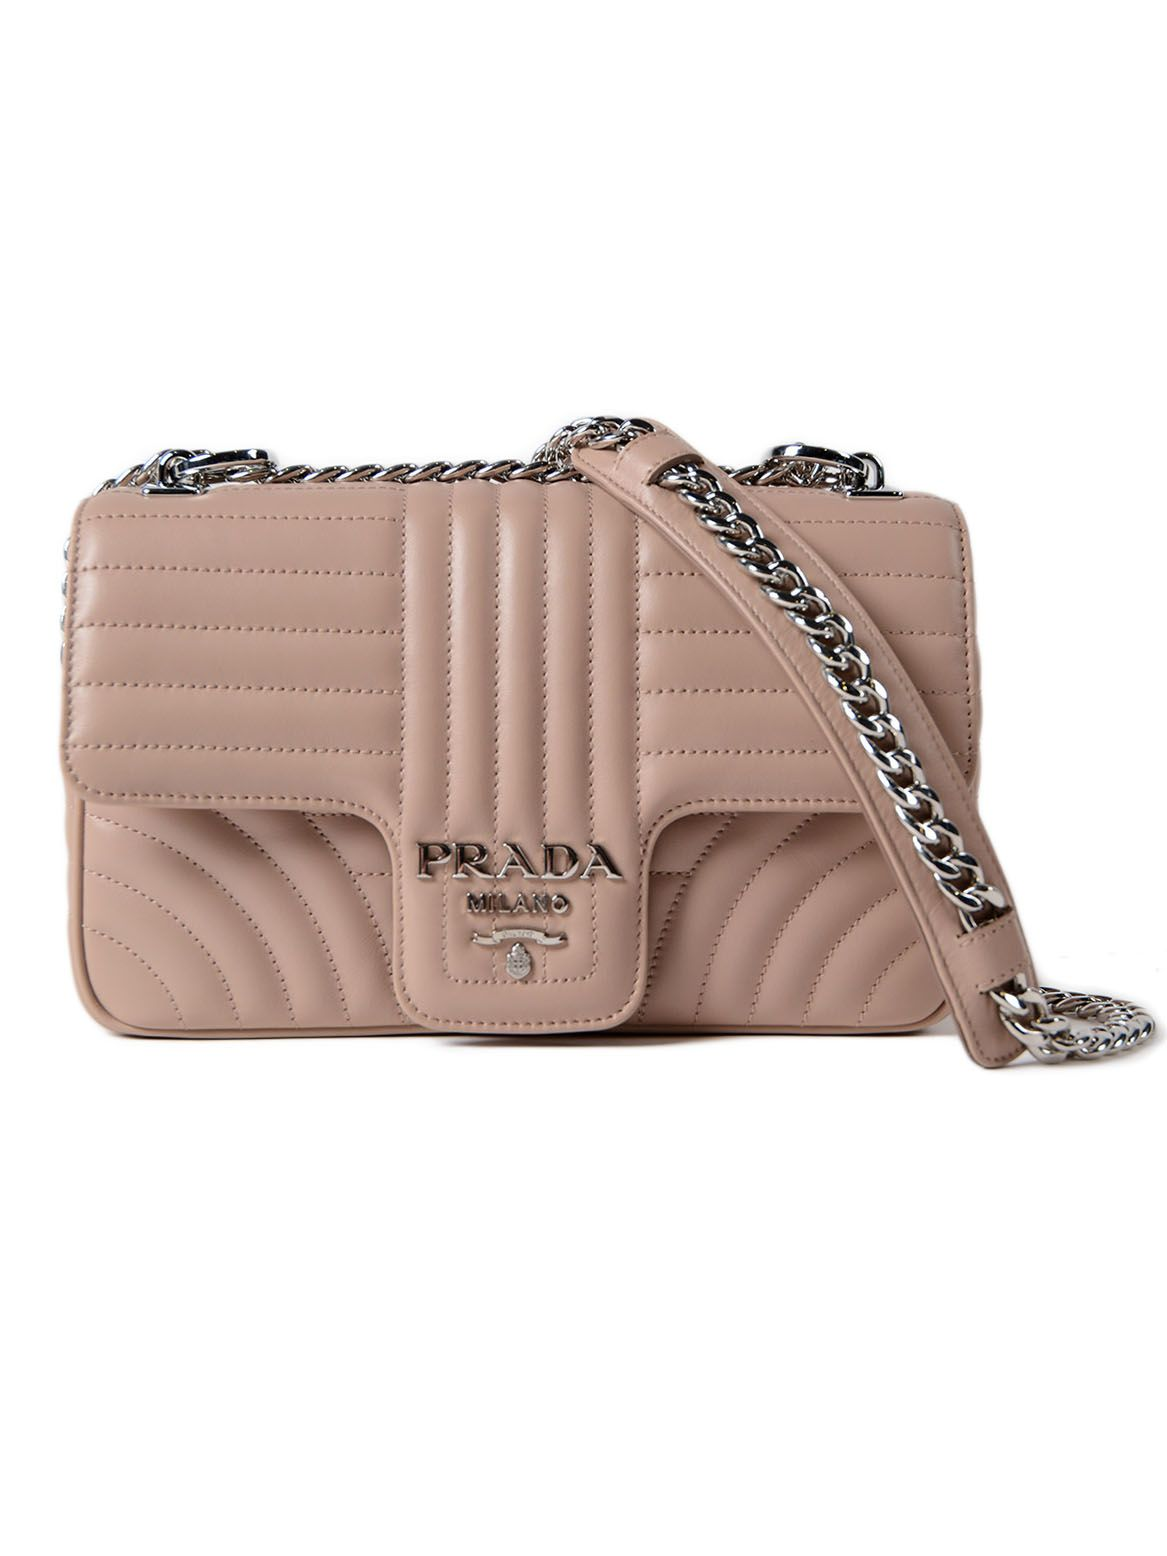 Prada Soft Calf Impunture Shoulder Bag